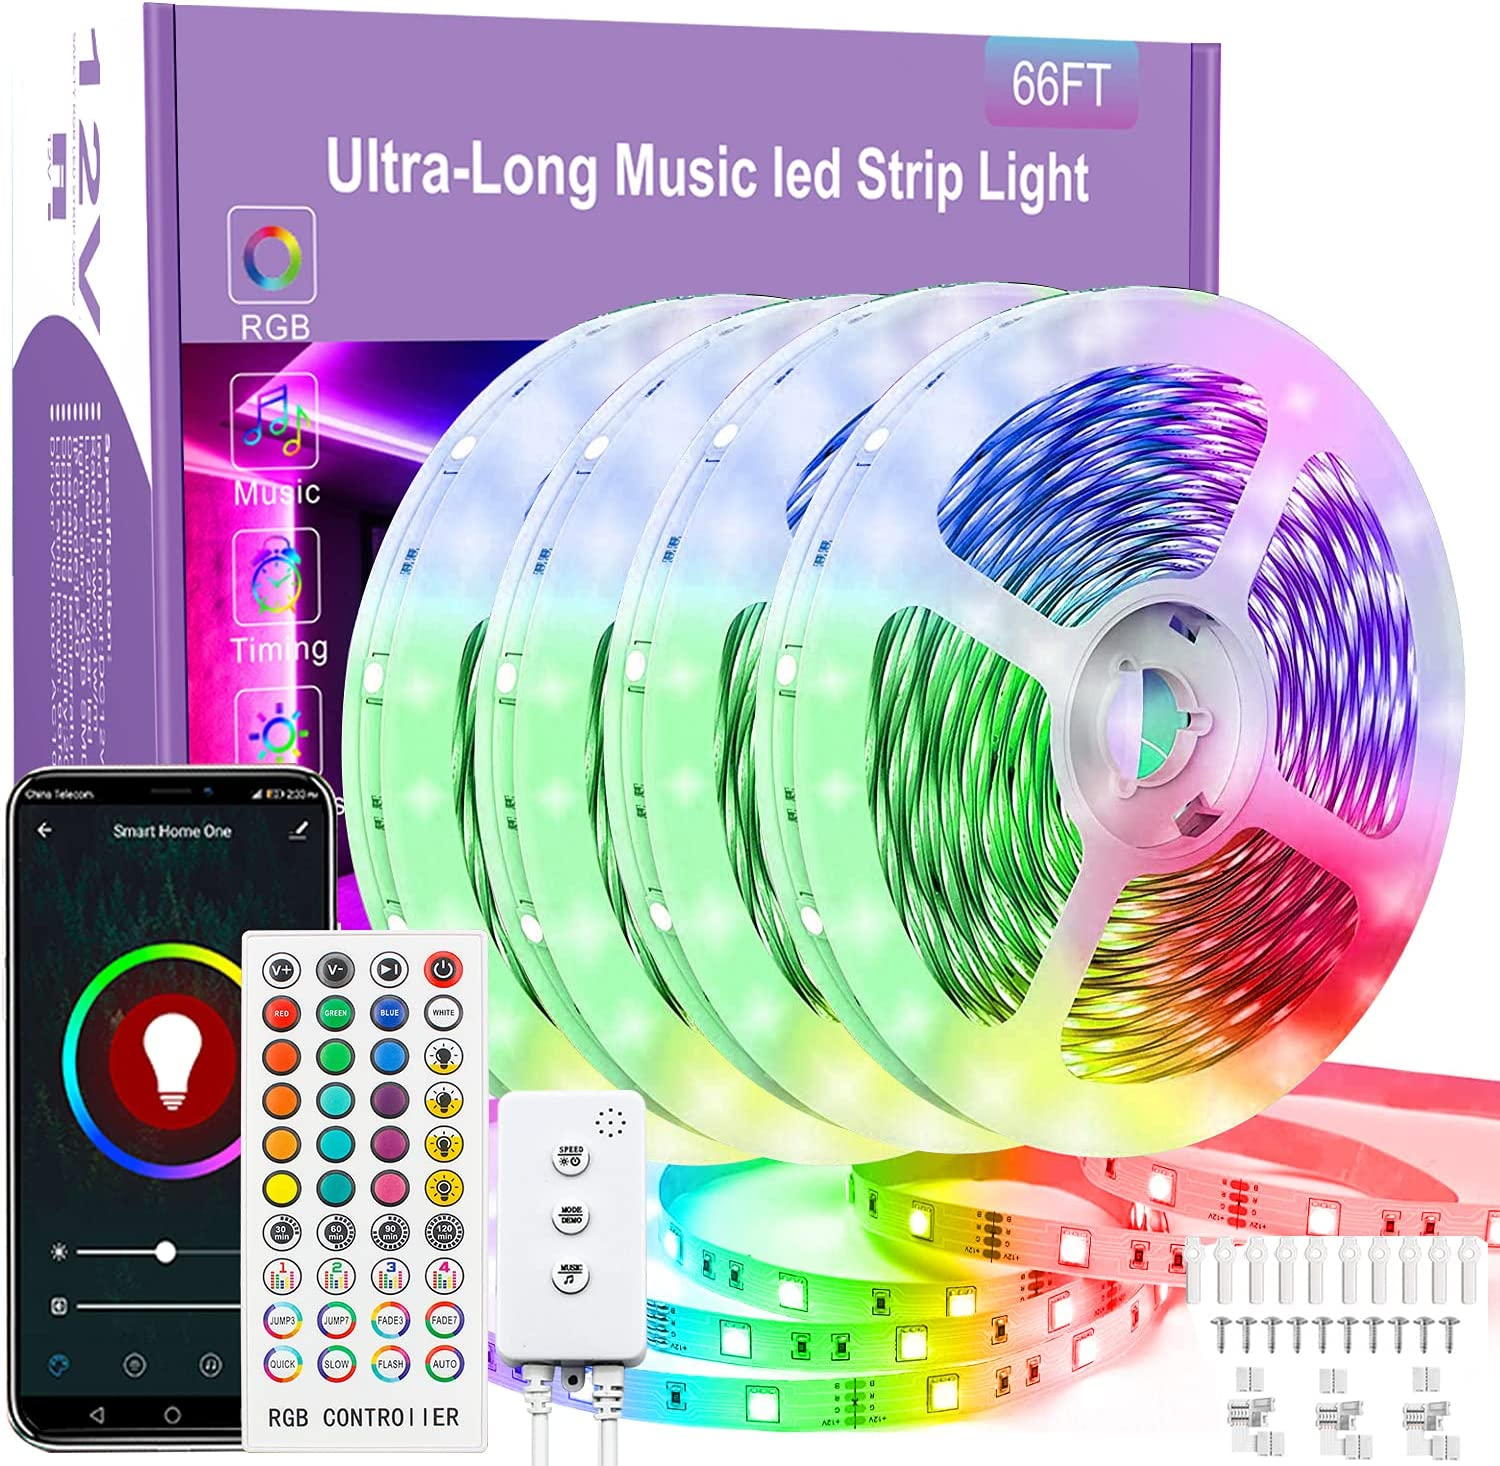 65.6Ft Smart LED Strip Lights ,RUISHINE RGB LED Lights Strip Sync to Music Color Changing Built-in Mic, App Control Rope Lights with Remote for Party, Bedroom and Home